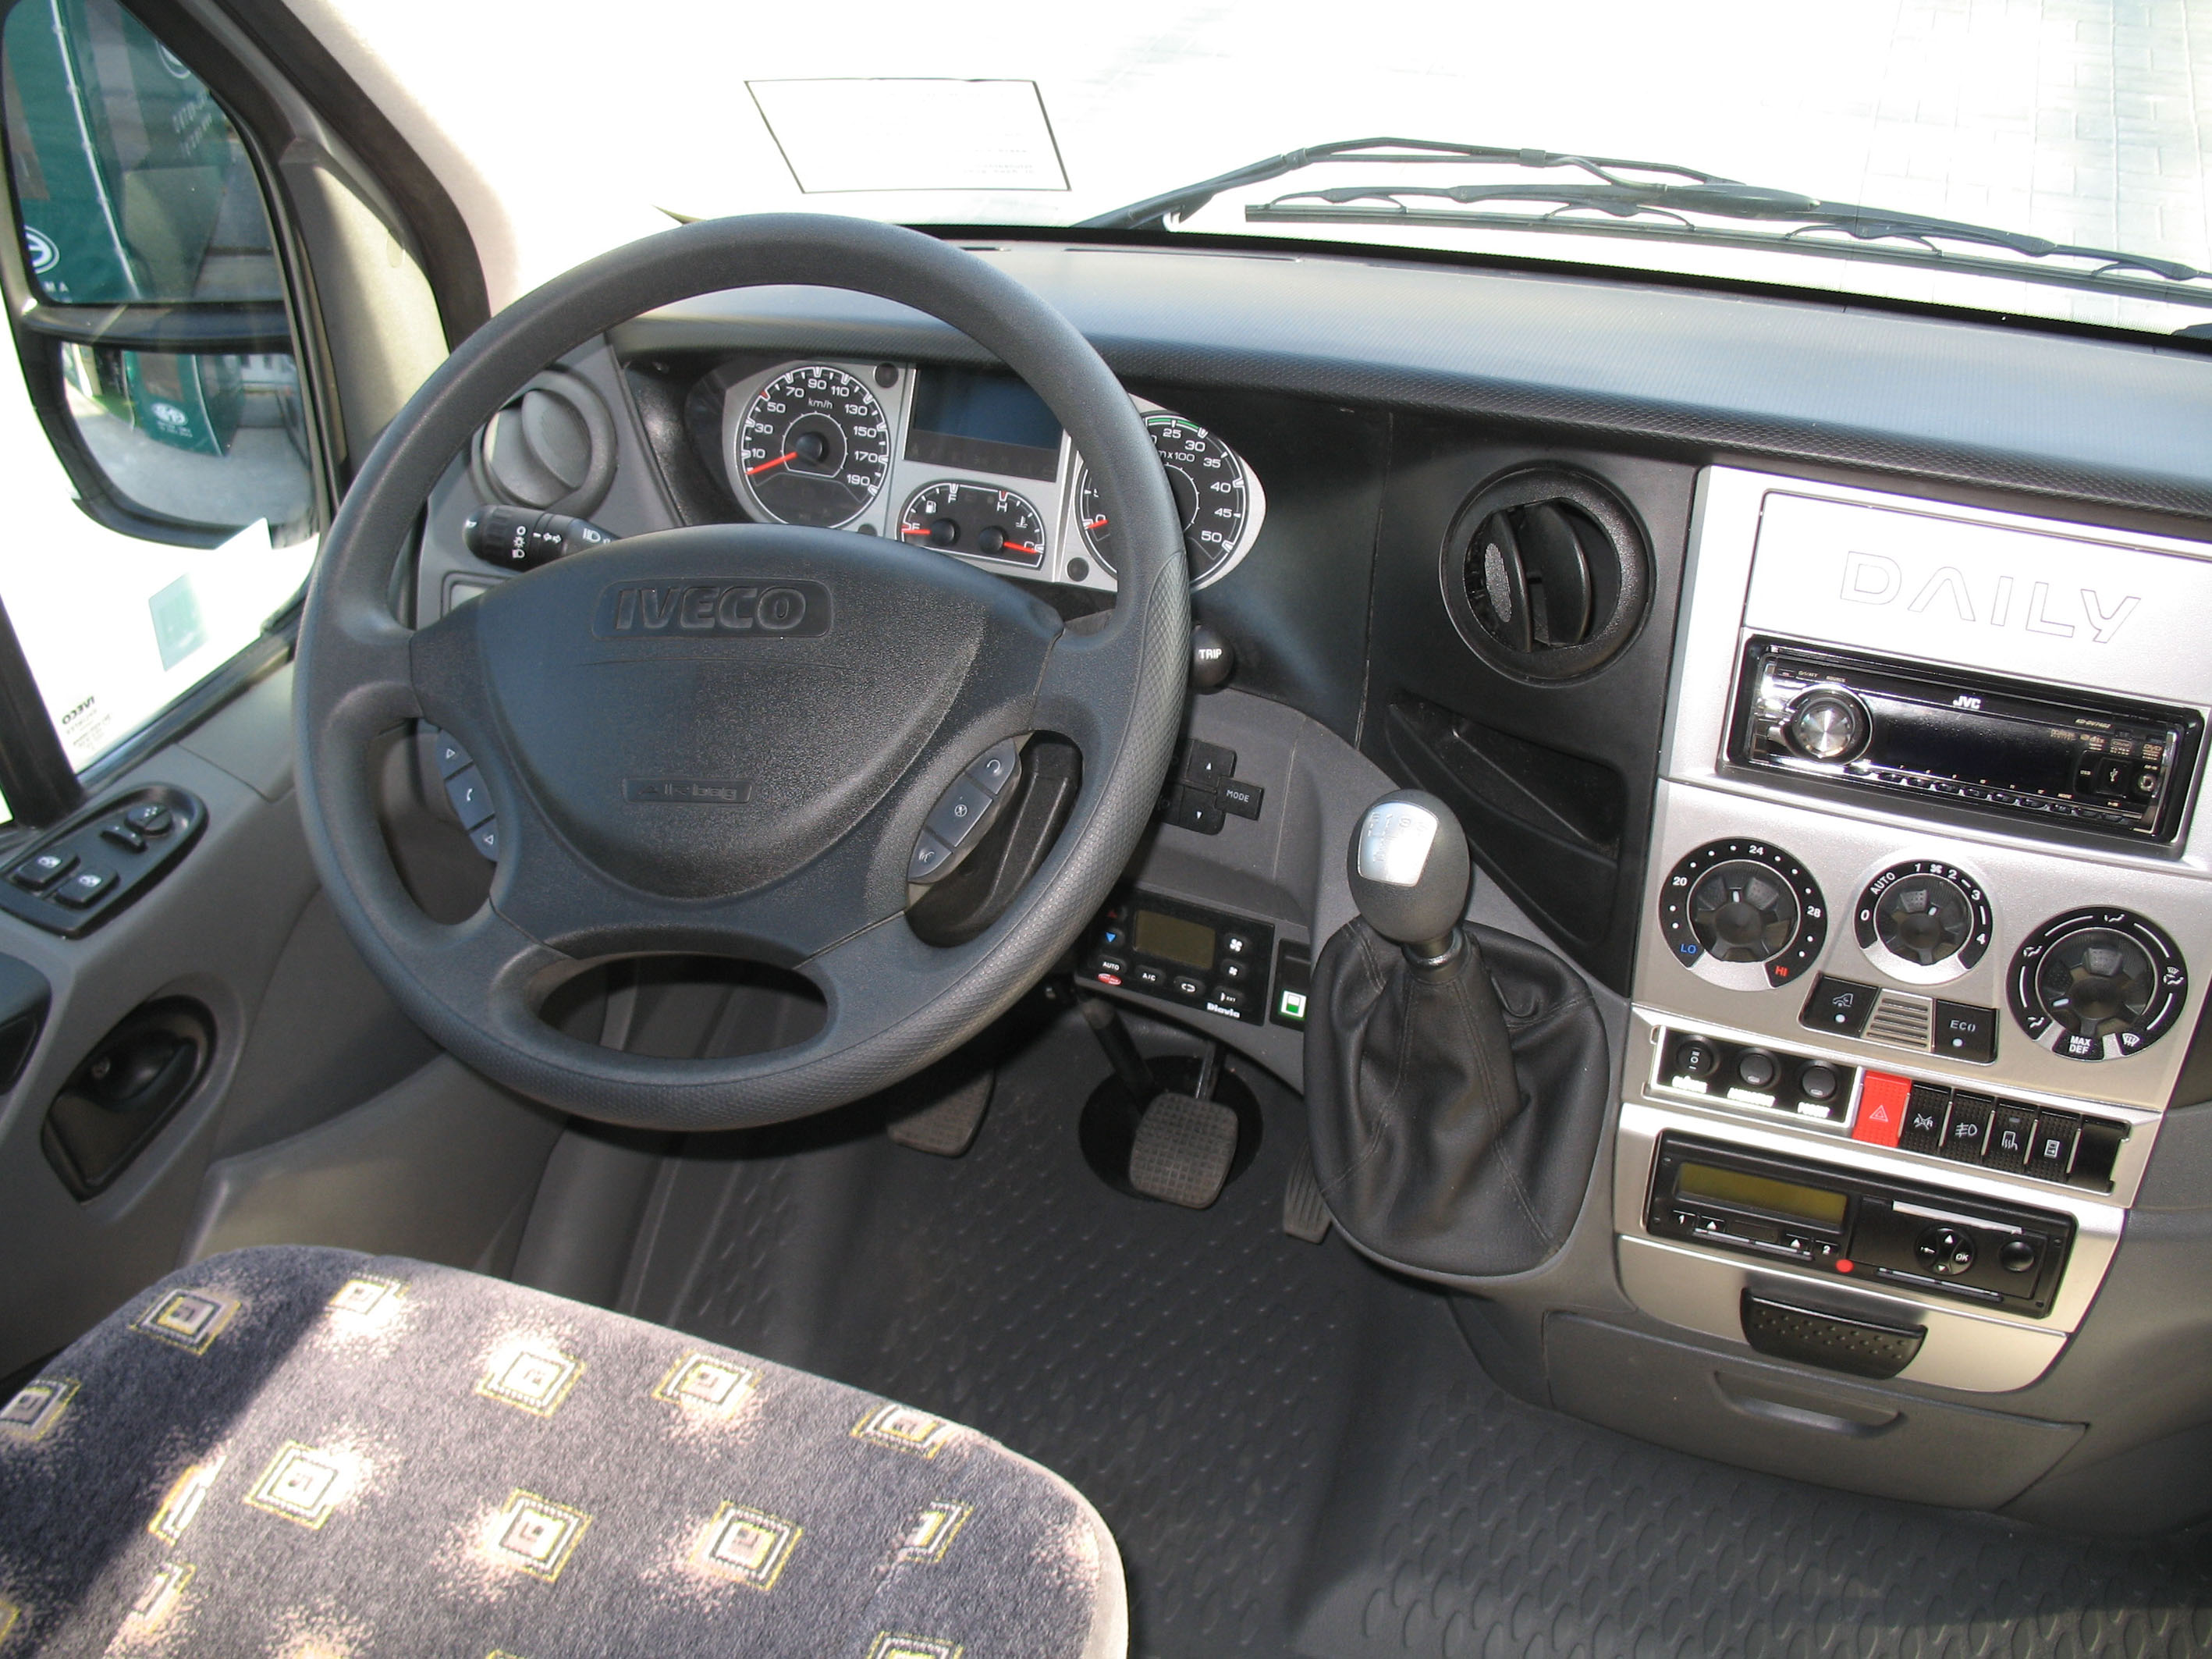 File:AMZ Iveco Daily - cockpit.jpg - Wikimedia Commons